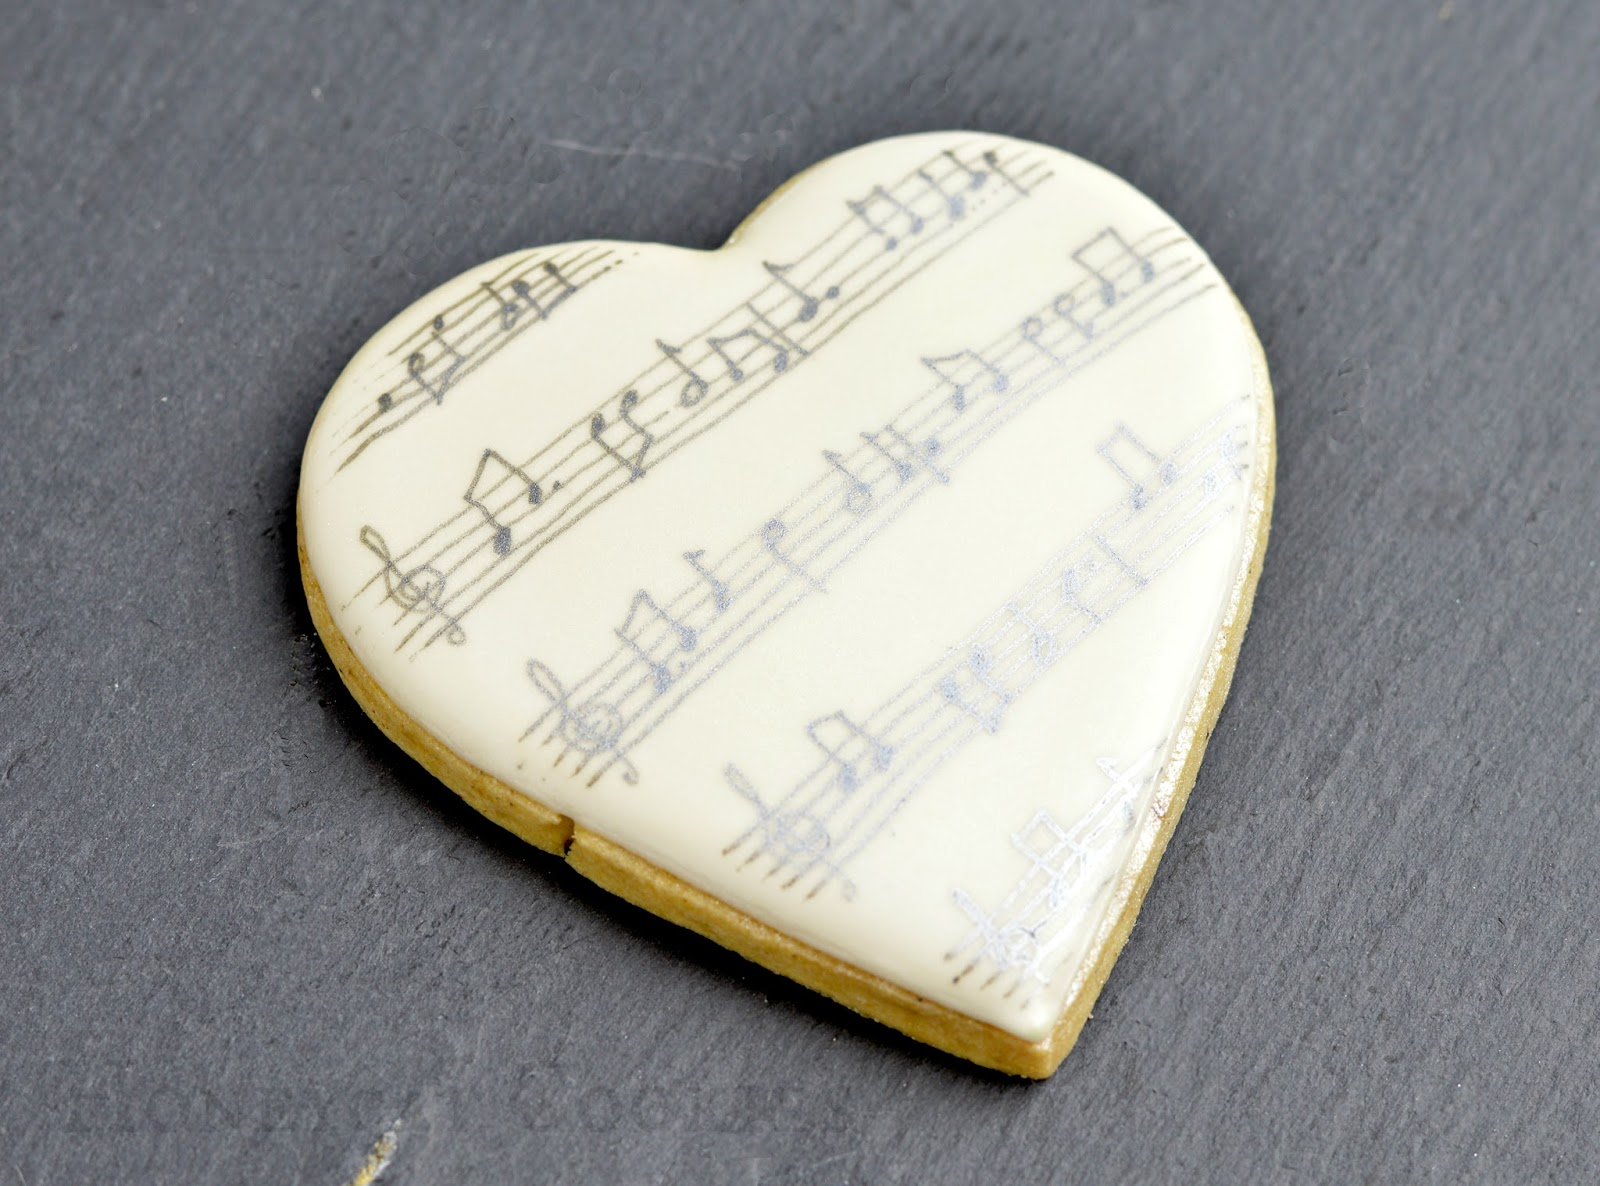 Hand drawn musical notation in food colour on heart shaped cookie for Valentine's Day.